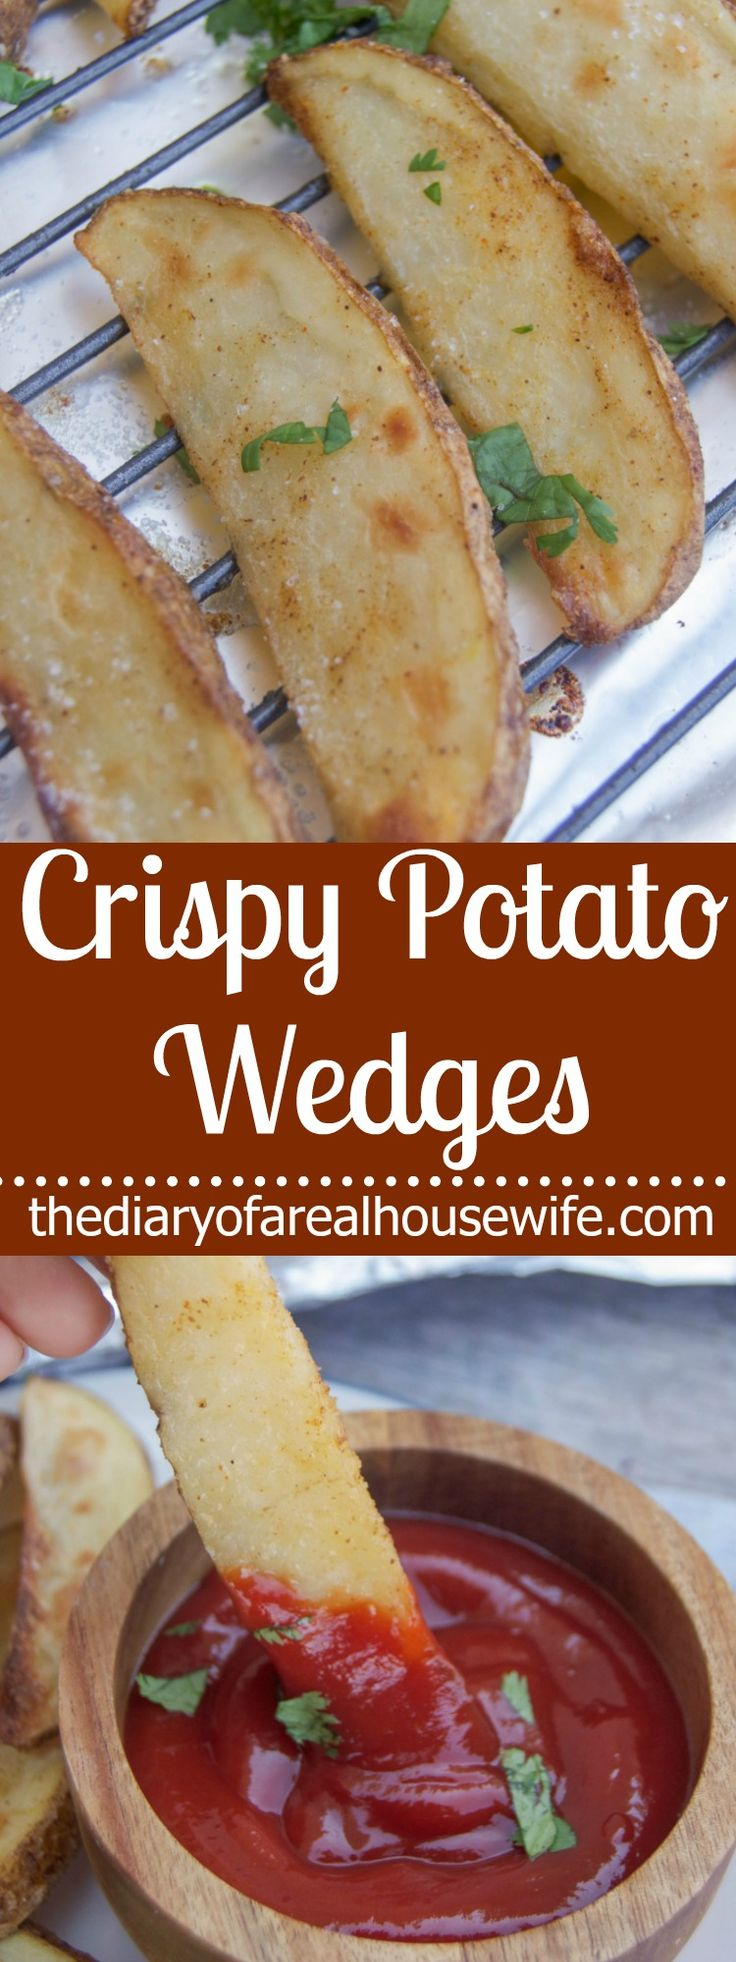 Crispy Potato Wedges. The BEST way to make potato wedges at home. So easy and they come out so crispy!